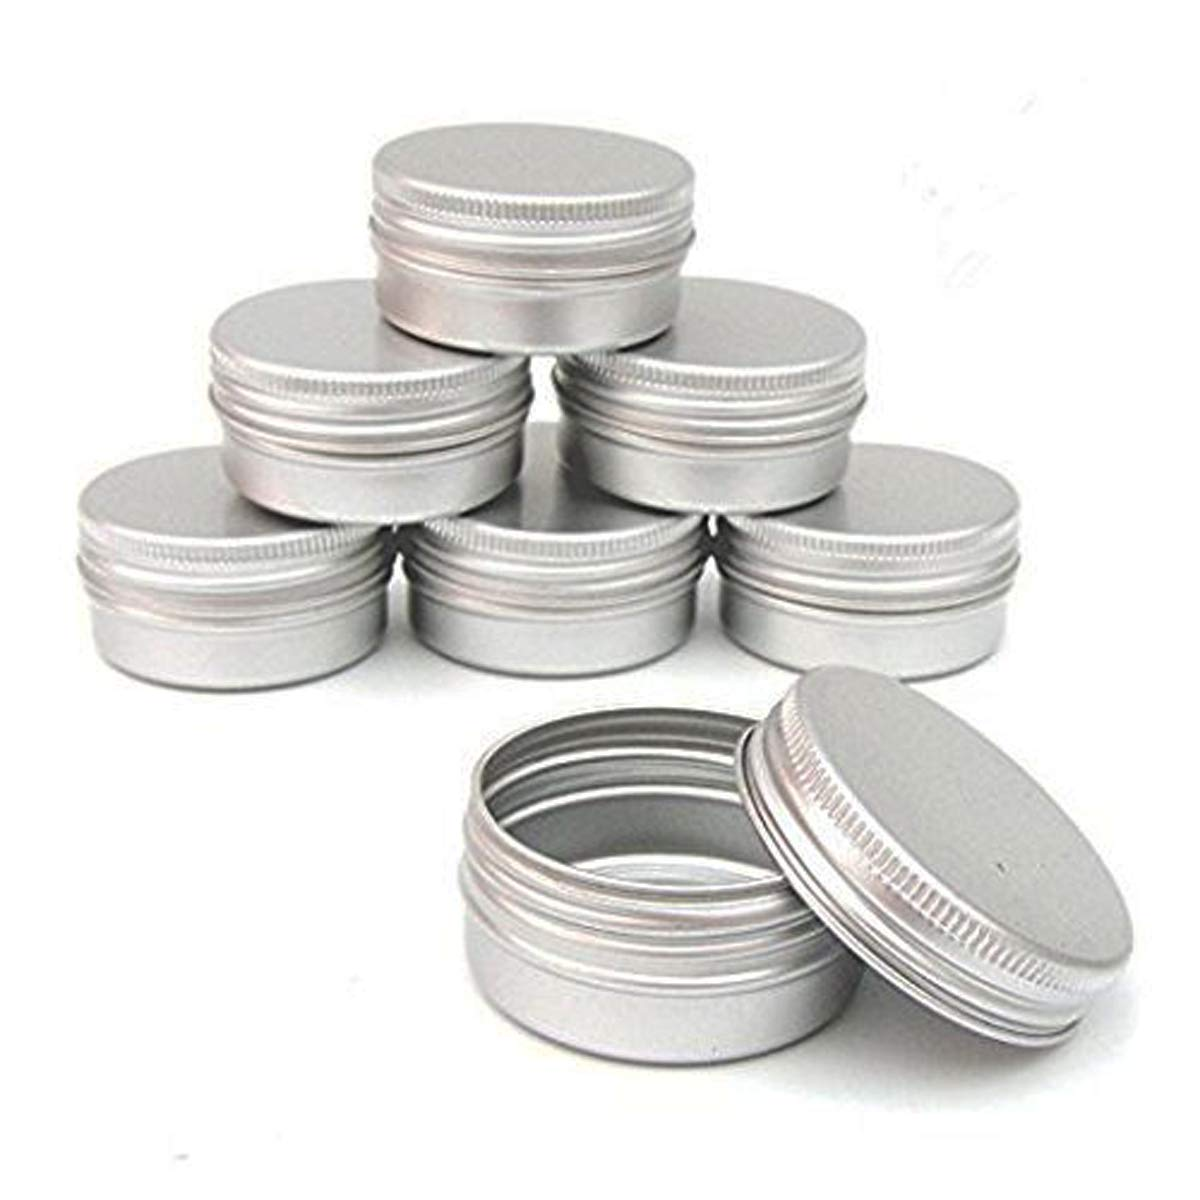 CTKcom Screw Top Round Steel Tins,1-Ounce, For Lip Balm, Crafts, Cosmetic, Candles, Storage Kit(Pack of 10)